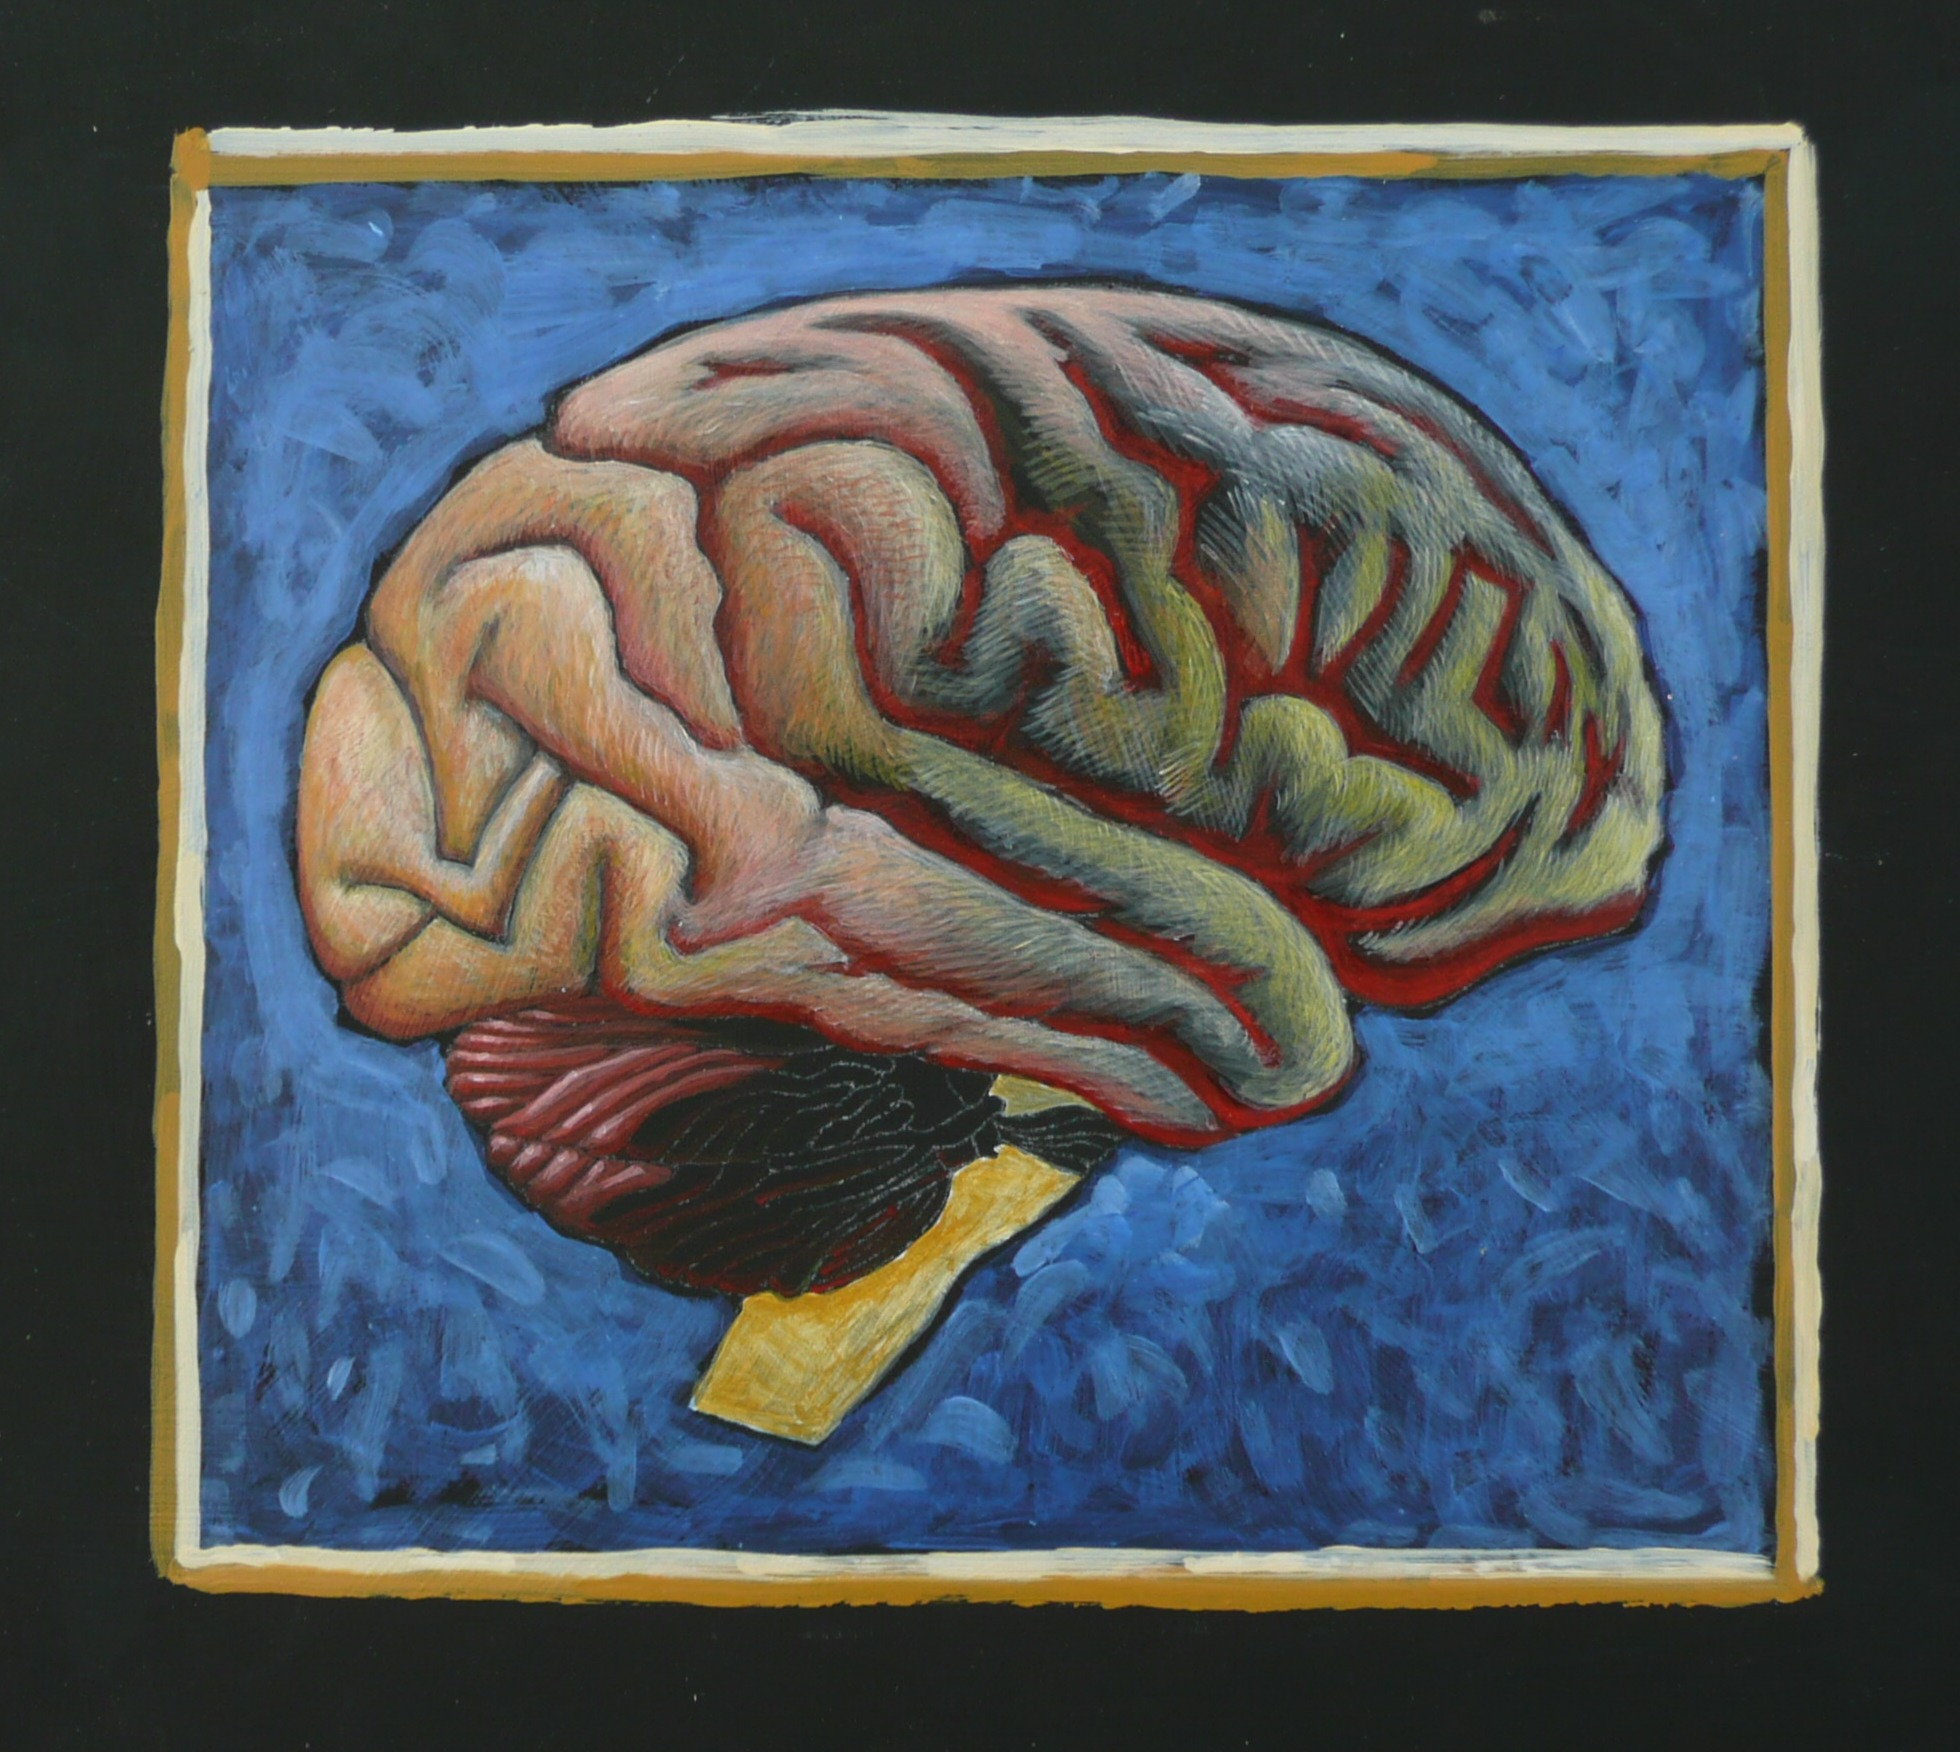 arylic brain painting